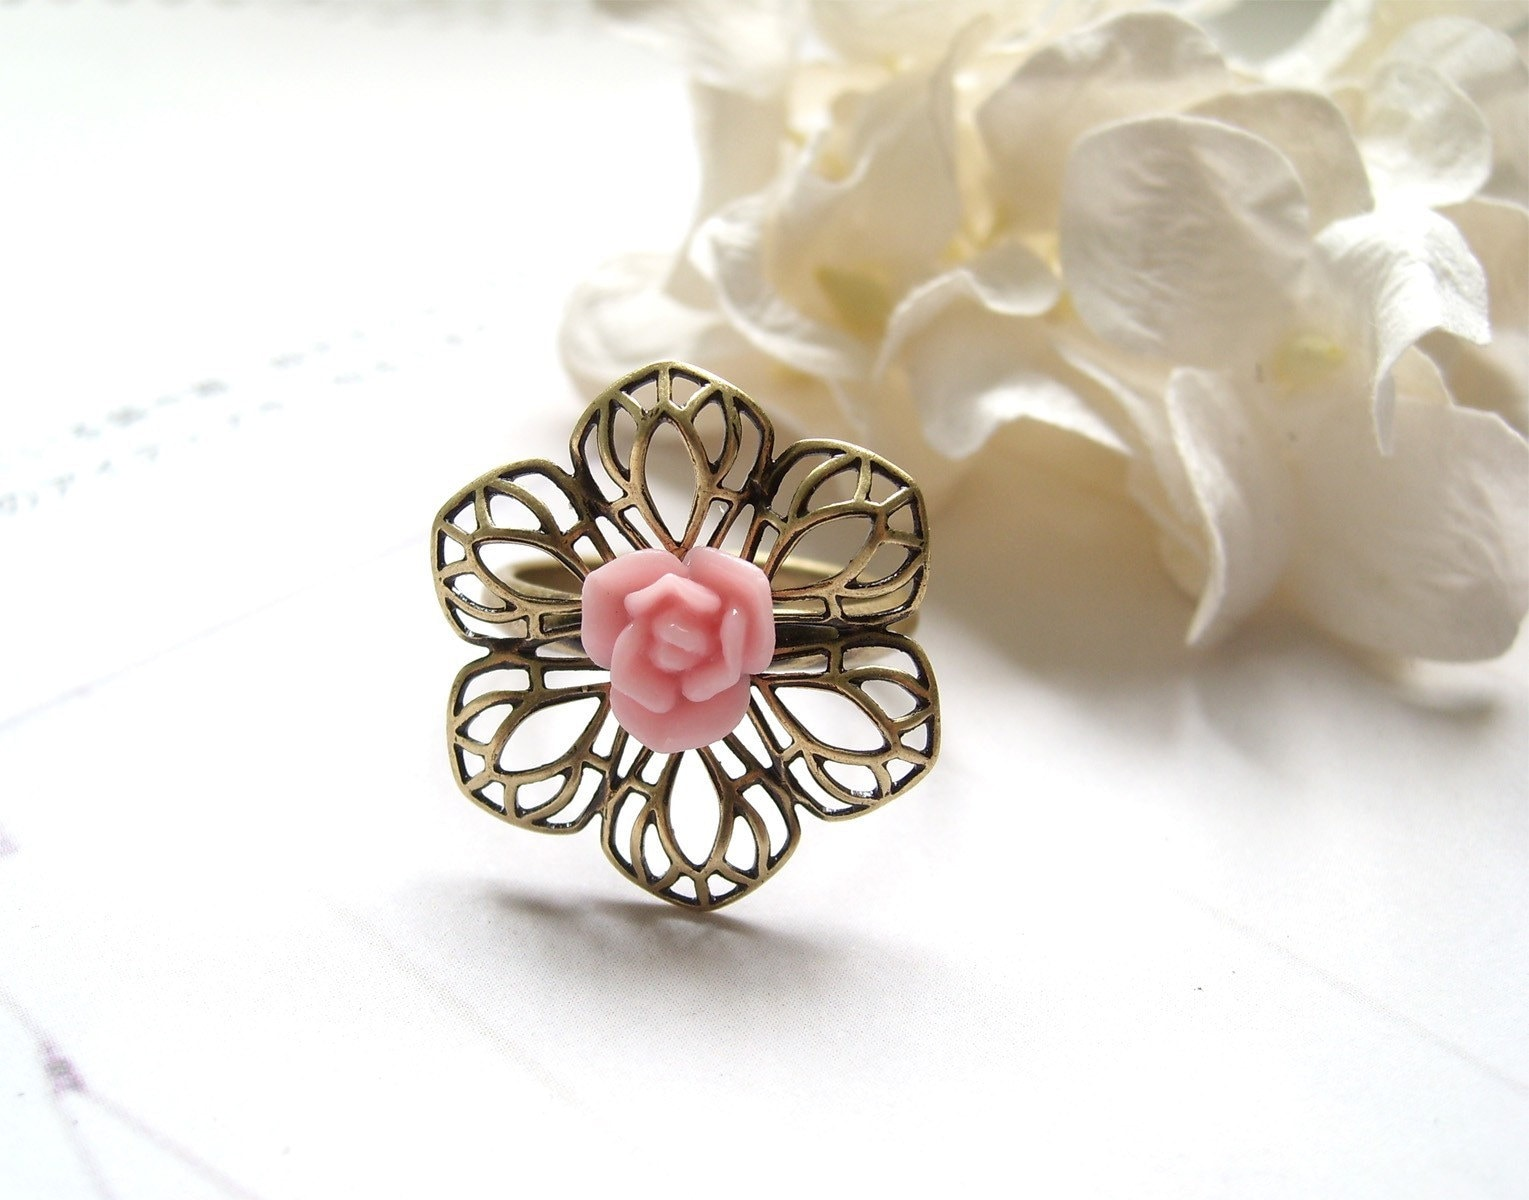 Gwen. Salmon pink rose bud with flower filigree antiqued brass adjustable ring